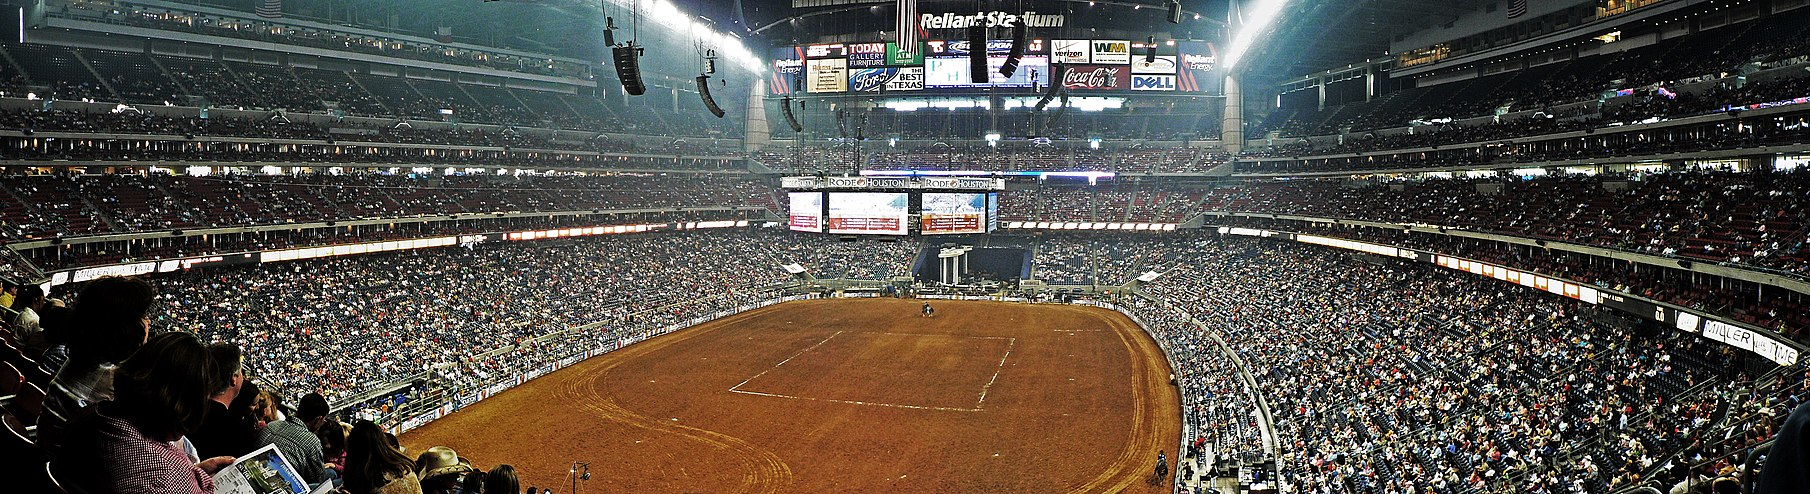 The annual Houston Livestock Show and Rodeo held inside the NRG Stadium Reliant Stadium Houston Rodeo.jpg